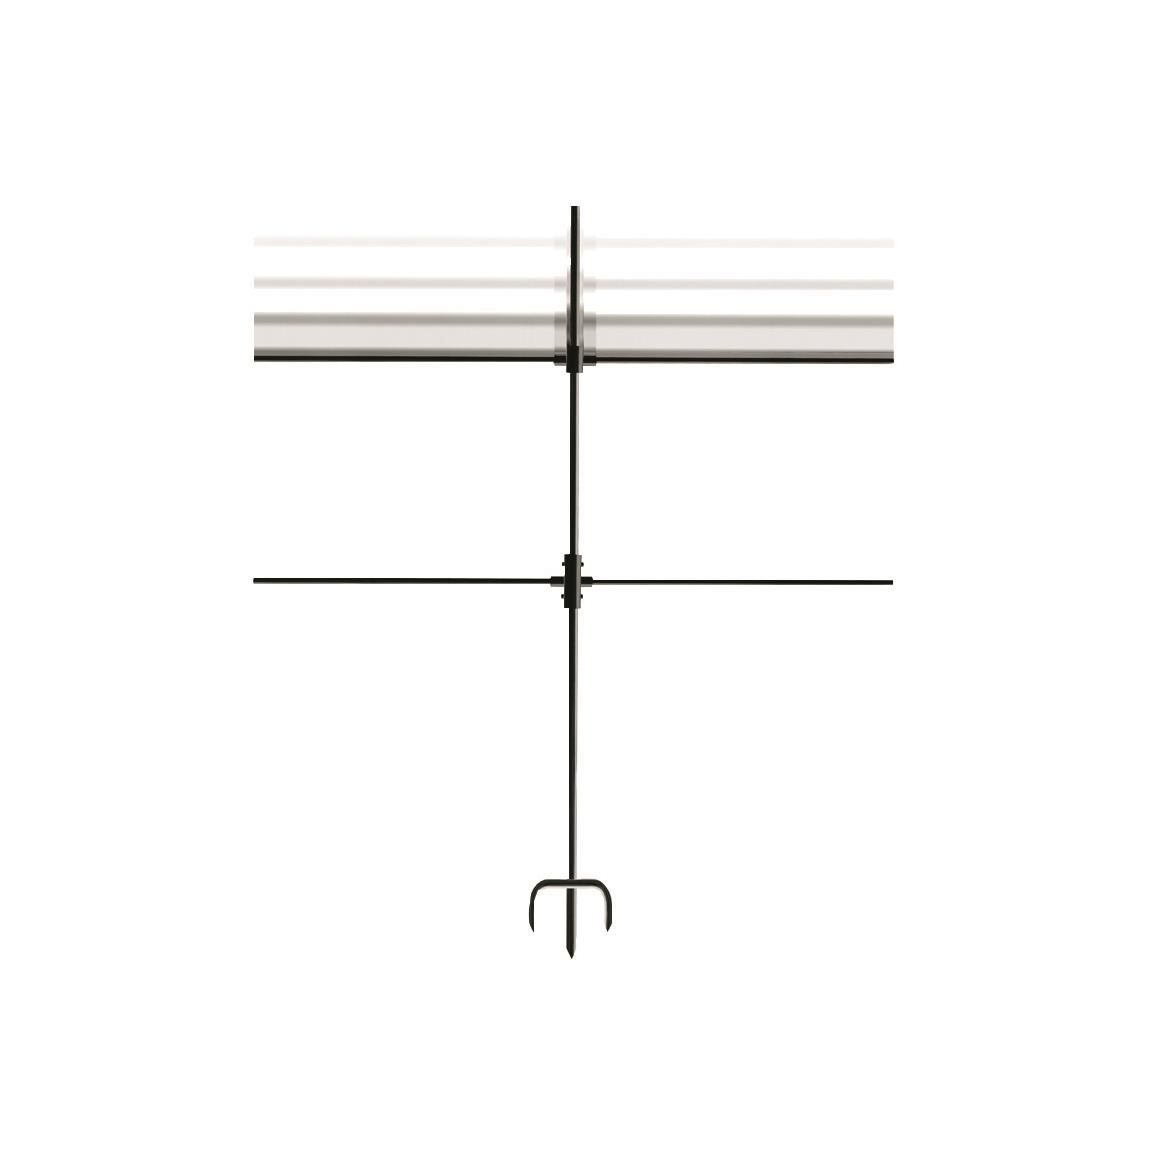 Top crossbar is height-adjustable to hold different target sizes